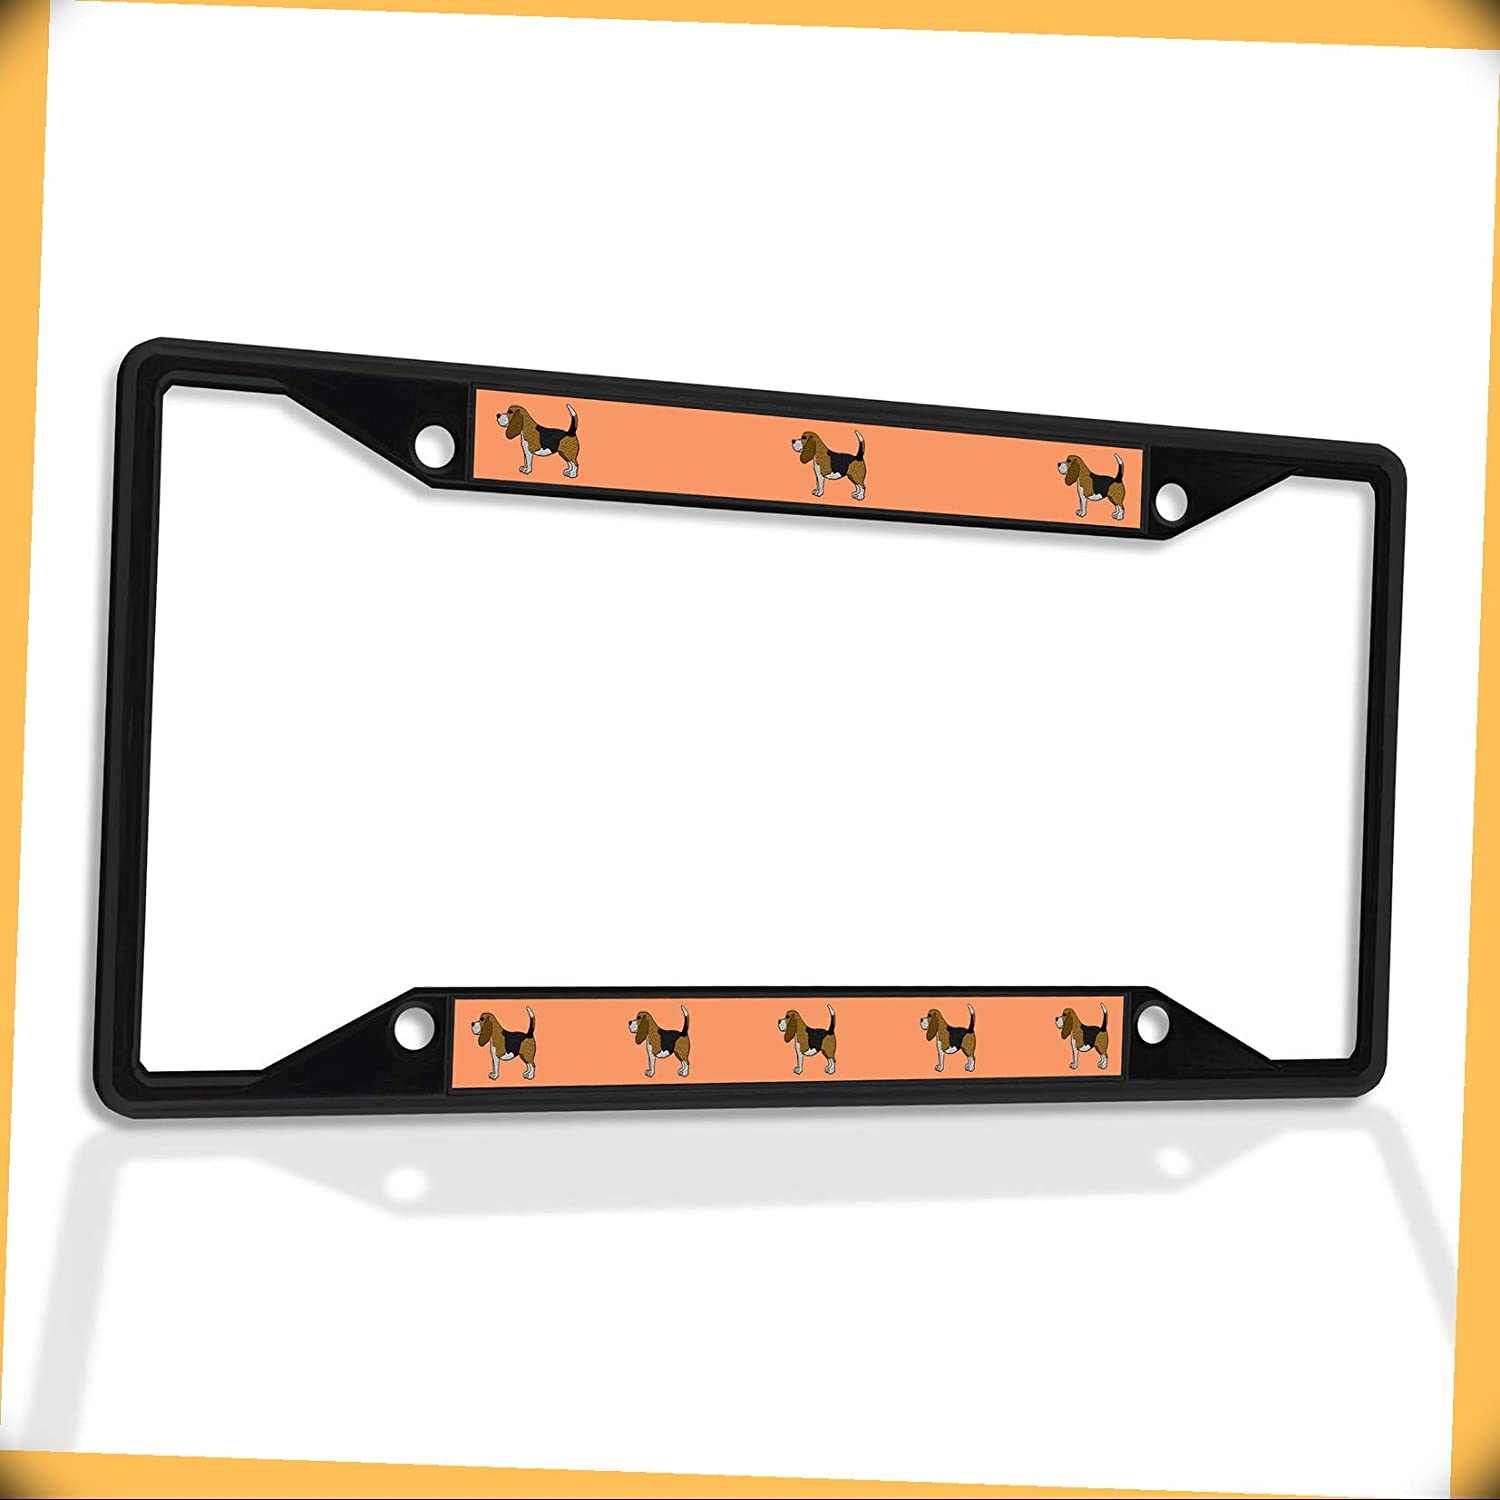 New Metal Aluminum Alloy Max 63% OFF Black Free shipping on posting reviews B4K Plate Insert Be Frame License